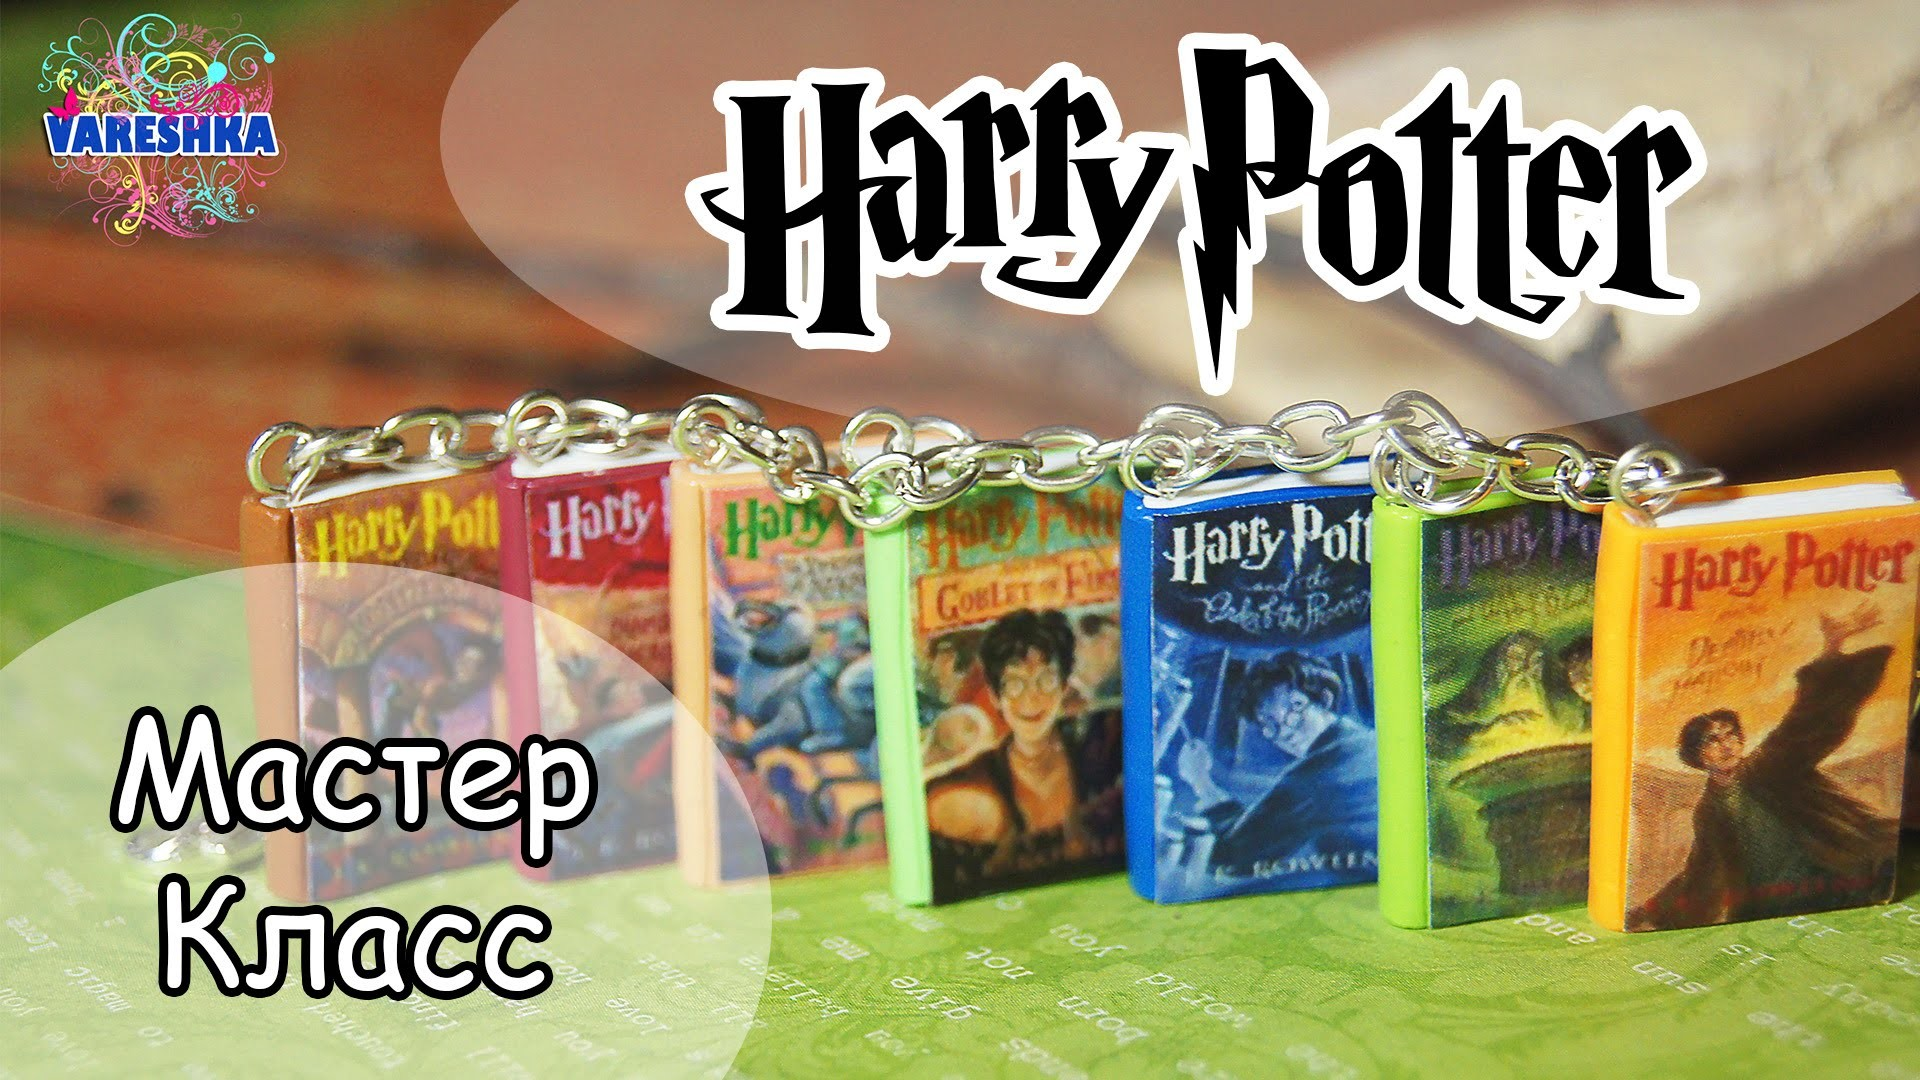 ♥ Колекция Гарри Поттера ♥ Полимерная глина ♥ Harry Potter ♥ Polymer clay ♥ Vareshka